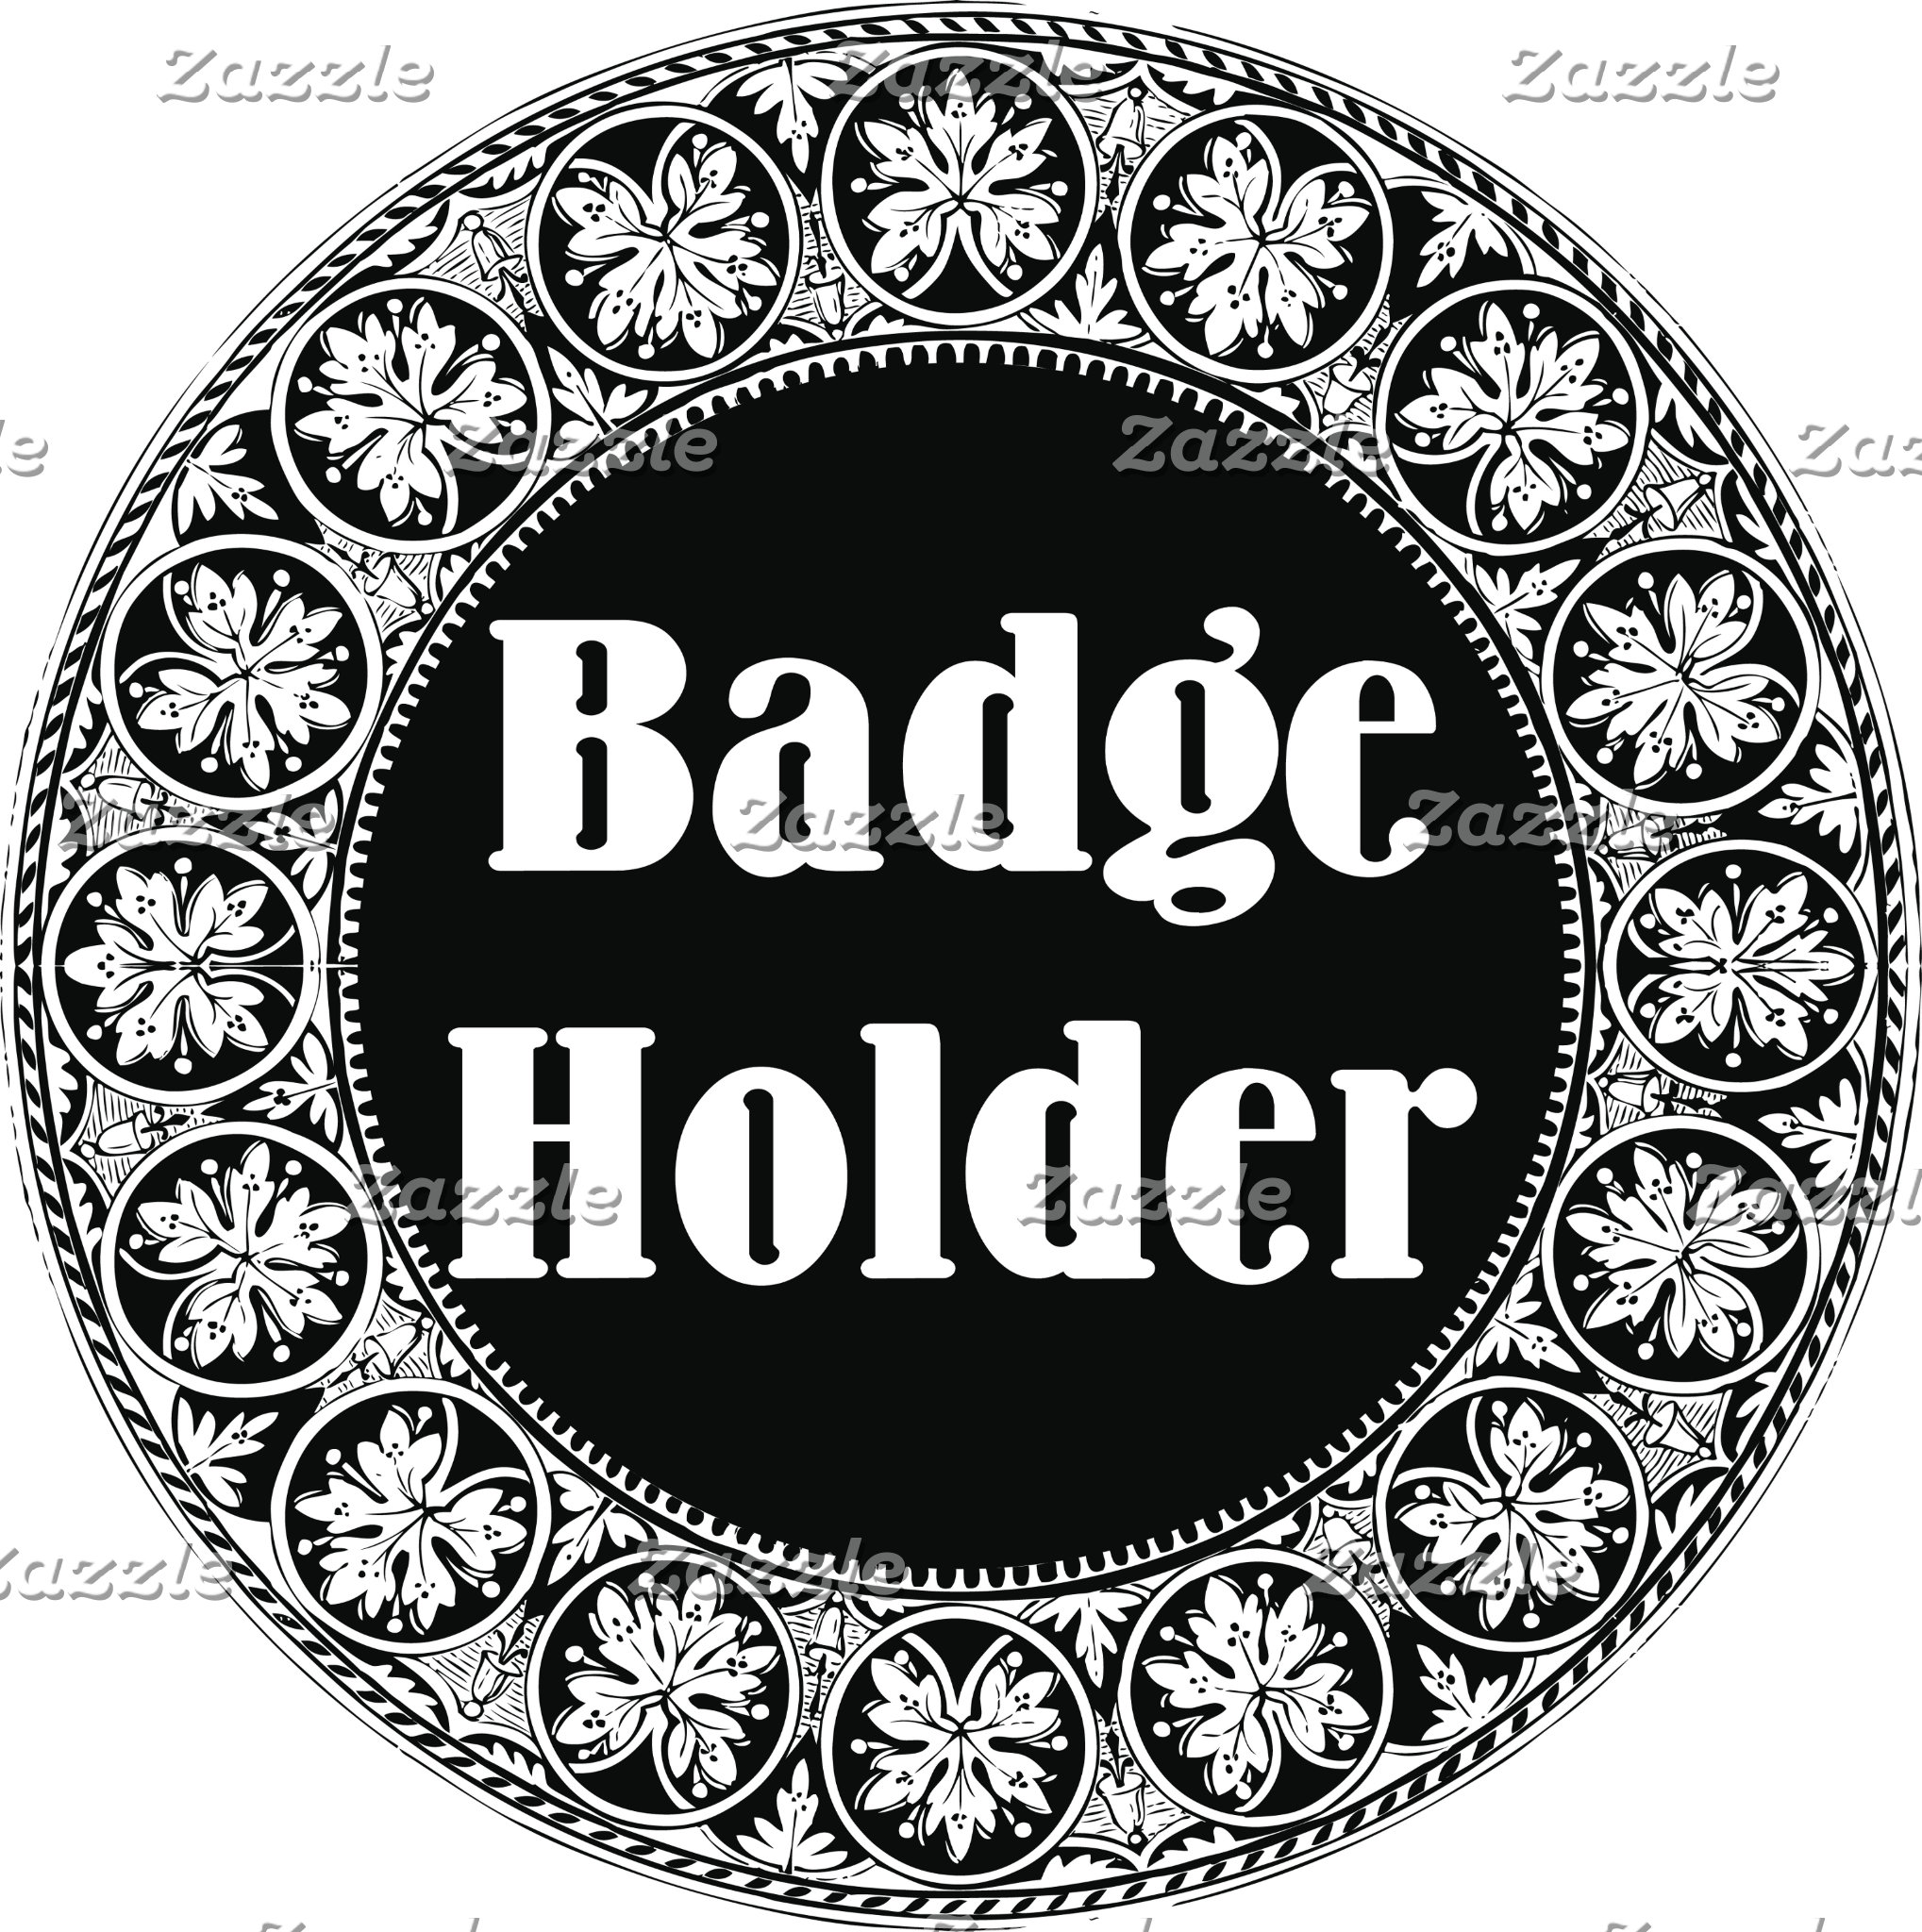 Badges and Badge Holders